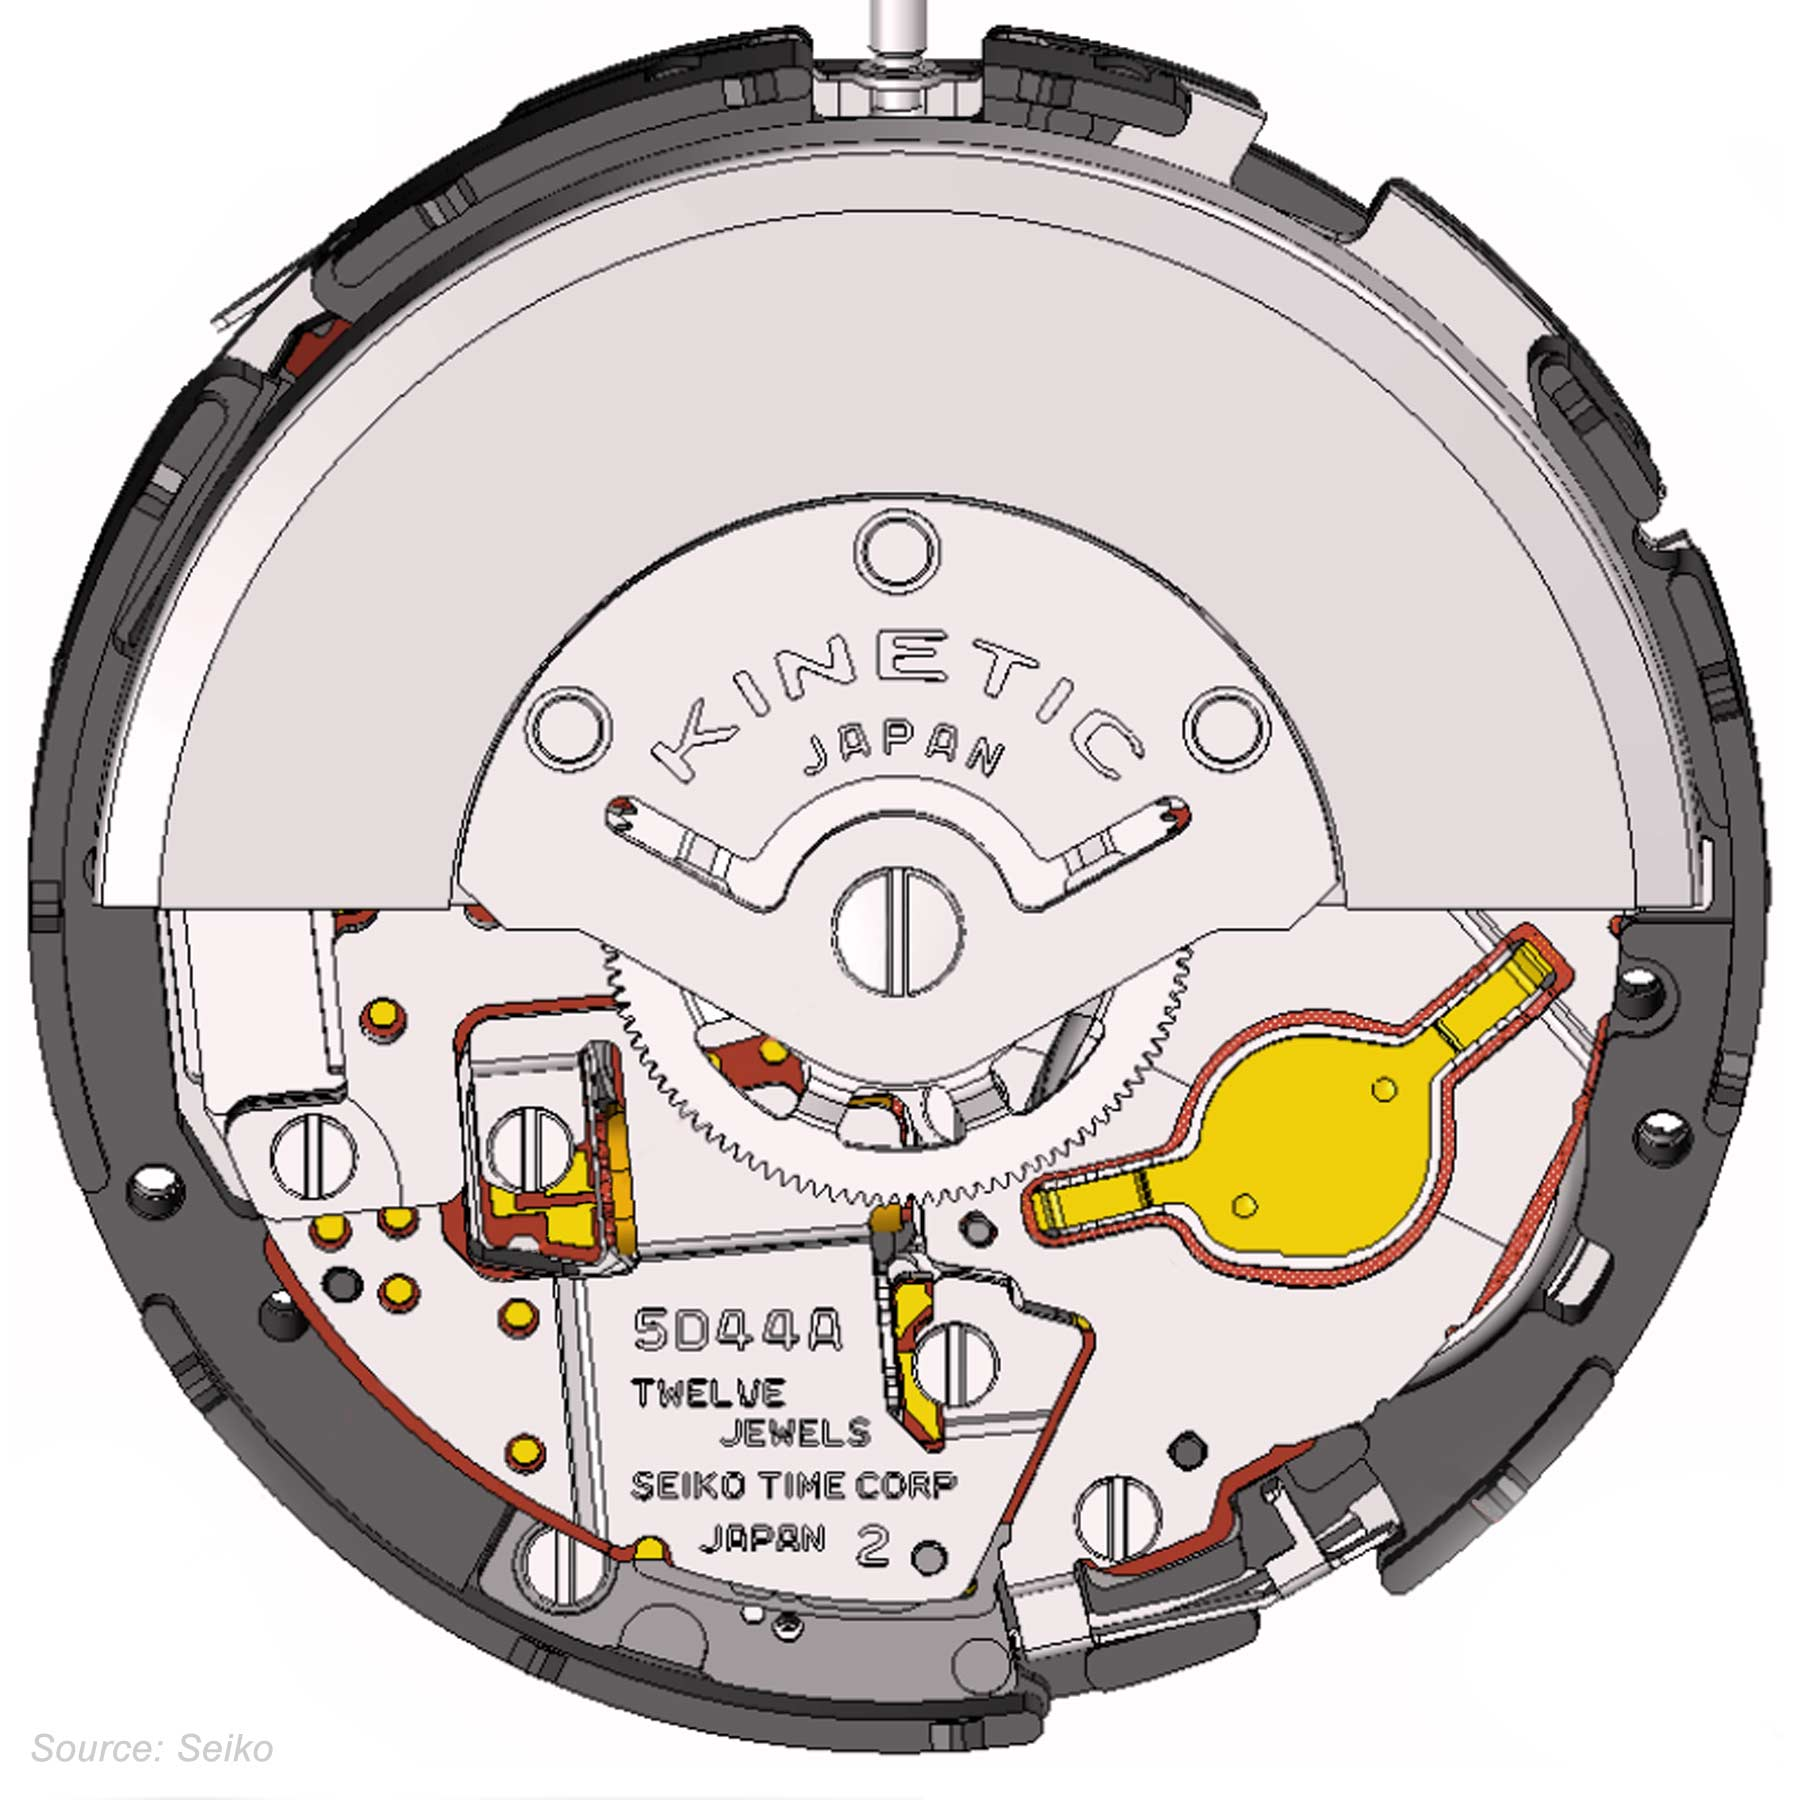 Seiko Caliber 5d44a Drawing